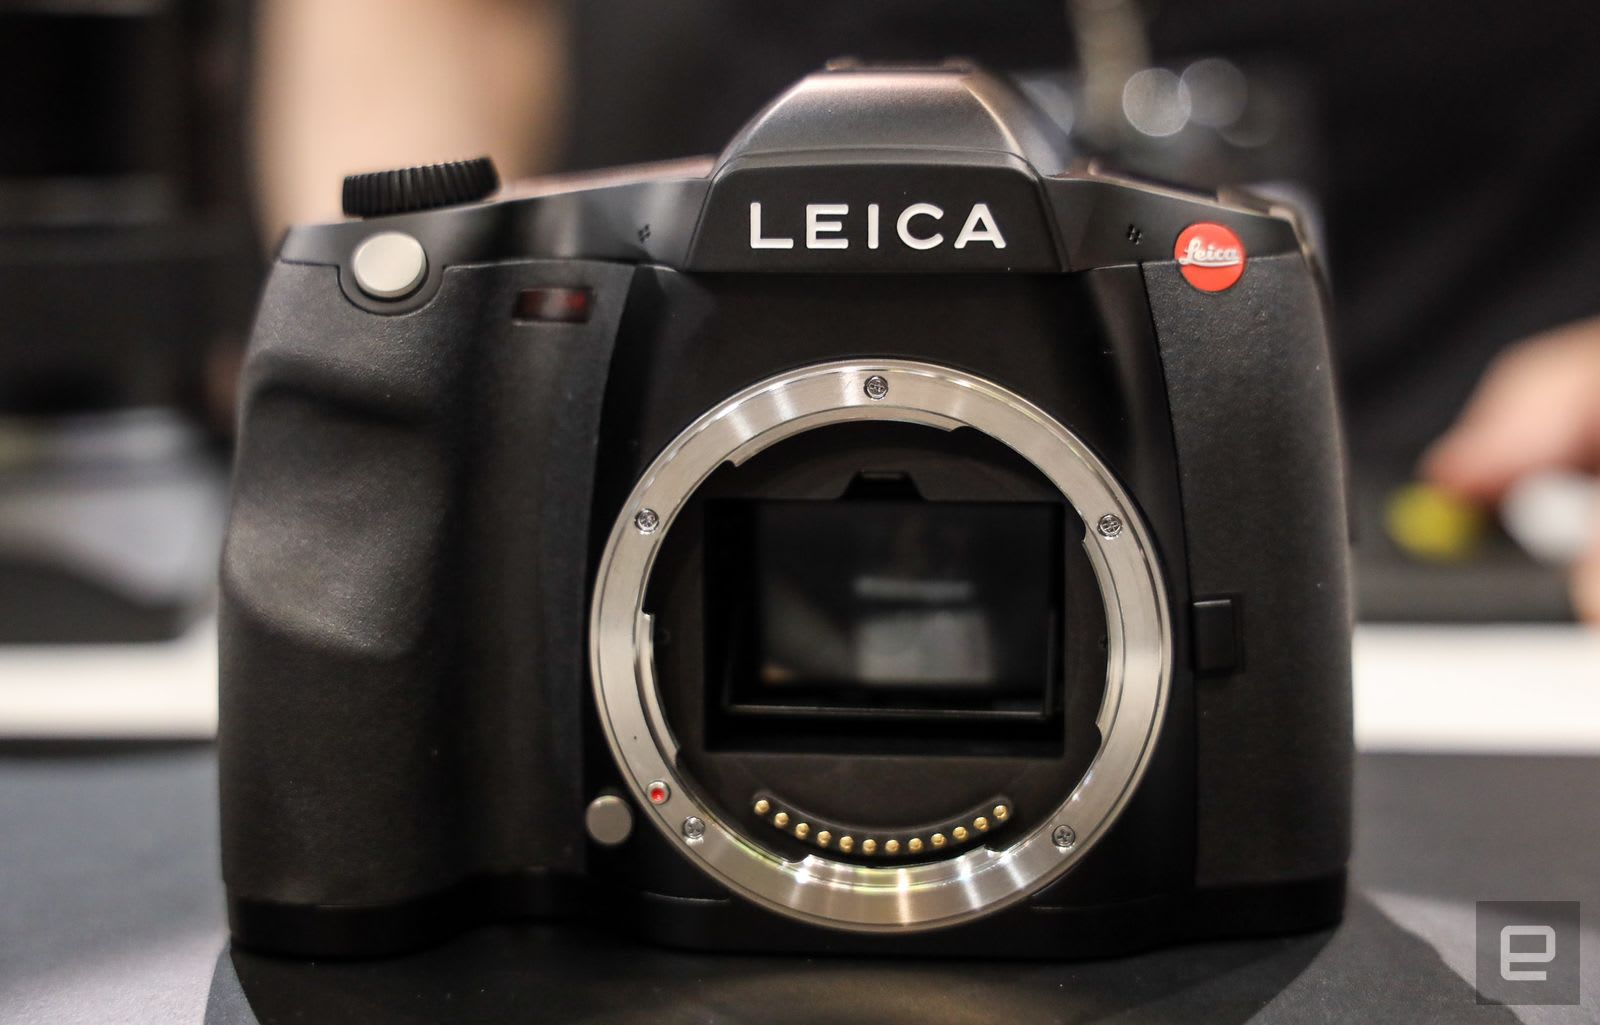 Leica's S3 is a slick, 64-megapixel medium format DSLR